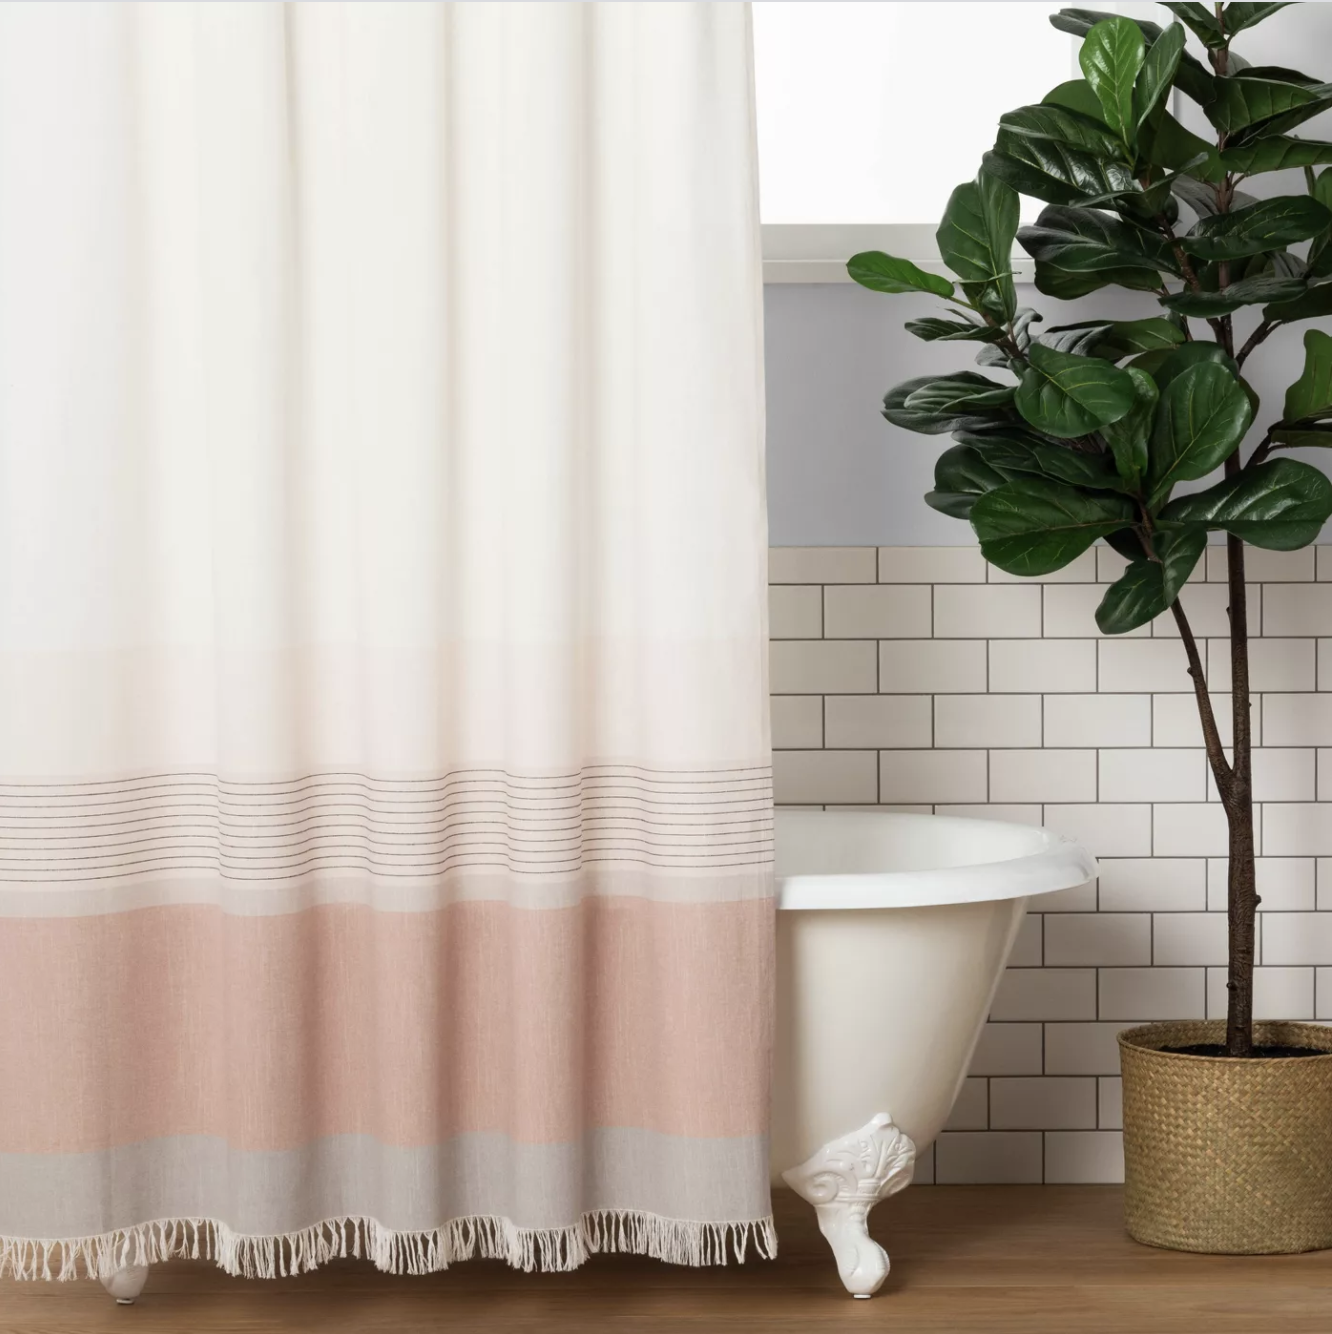 a white shower curtain with a pink ombre design towards the bottom and fringe on the end